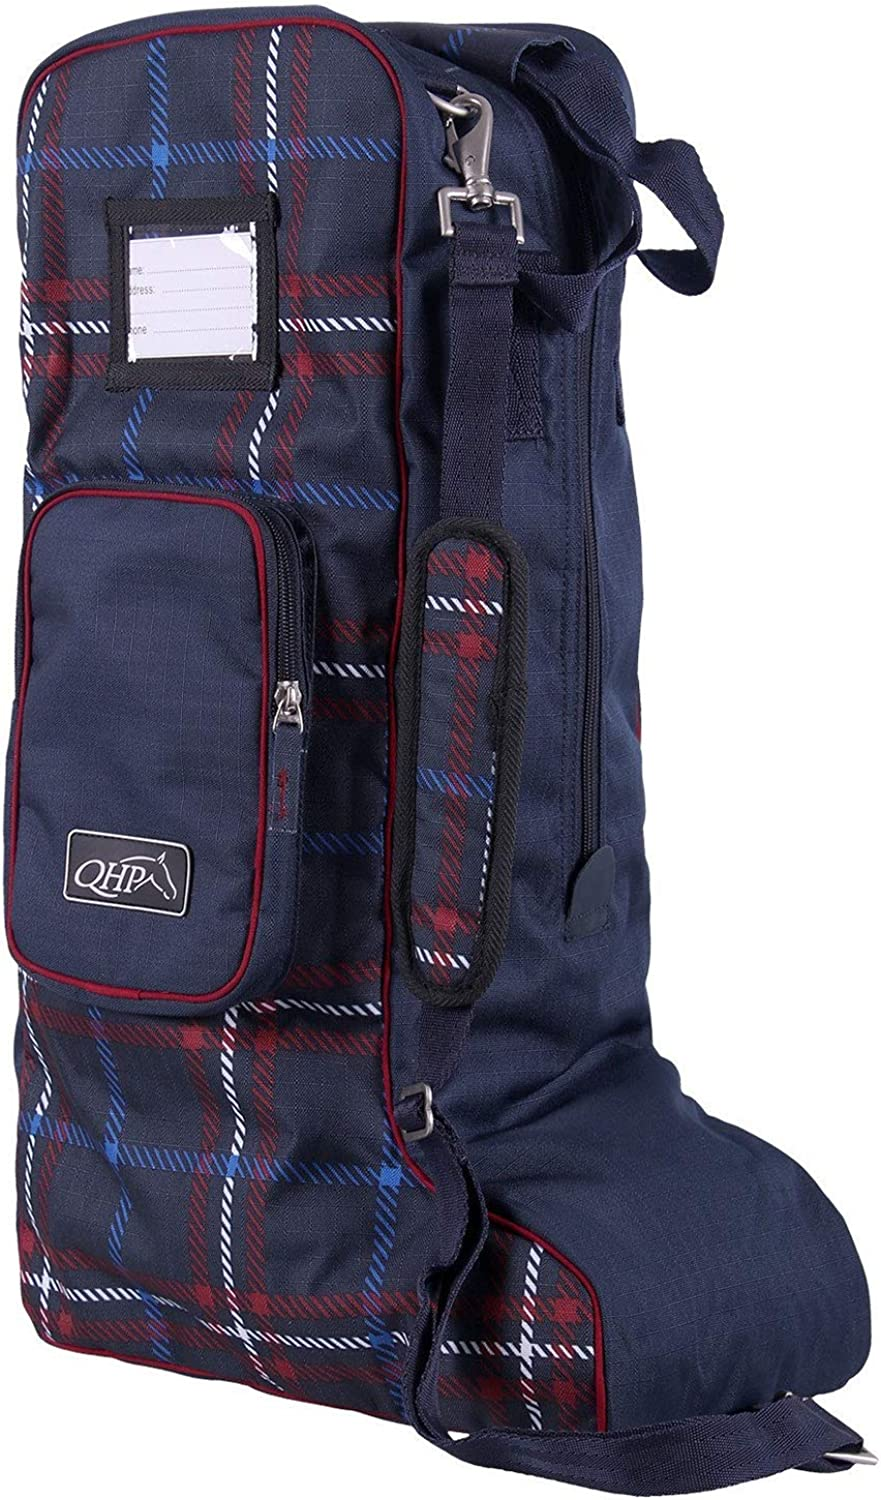 Size M QHP Boot bag Collection